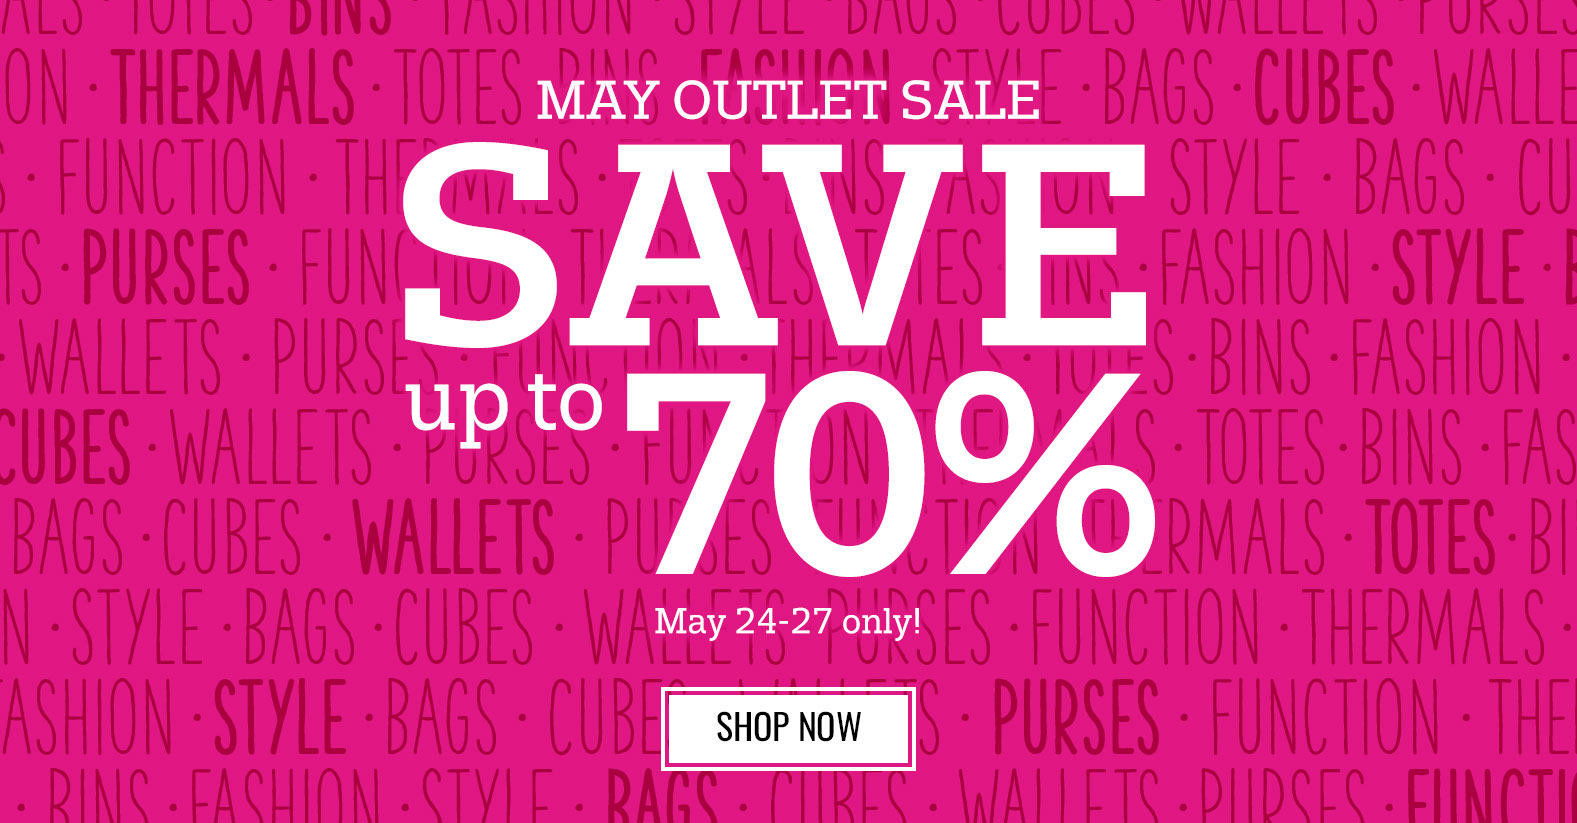 May Outlet Sale - Save up to 70% - May 24-27 Only!